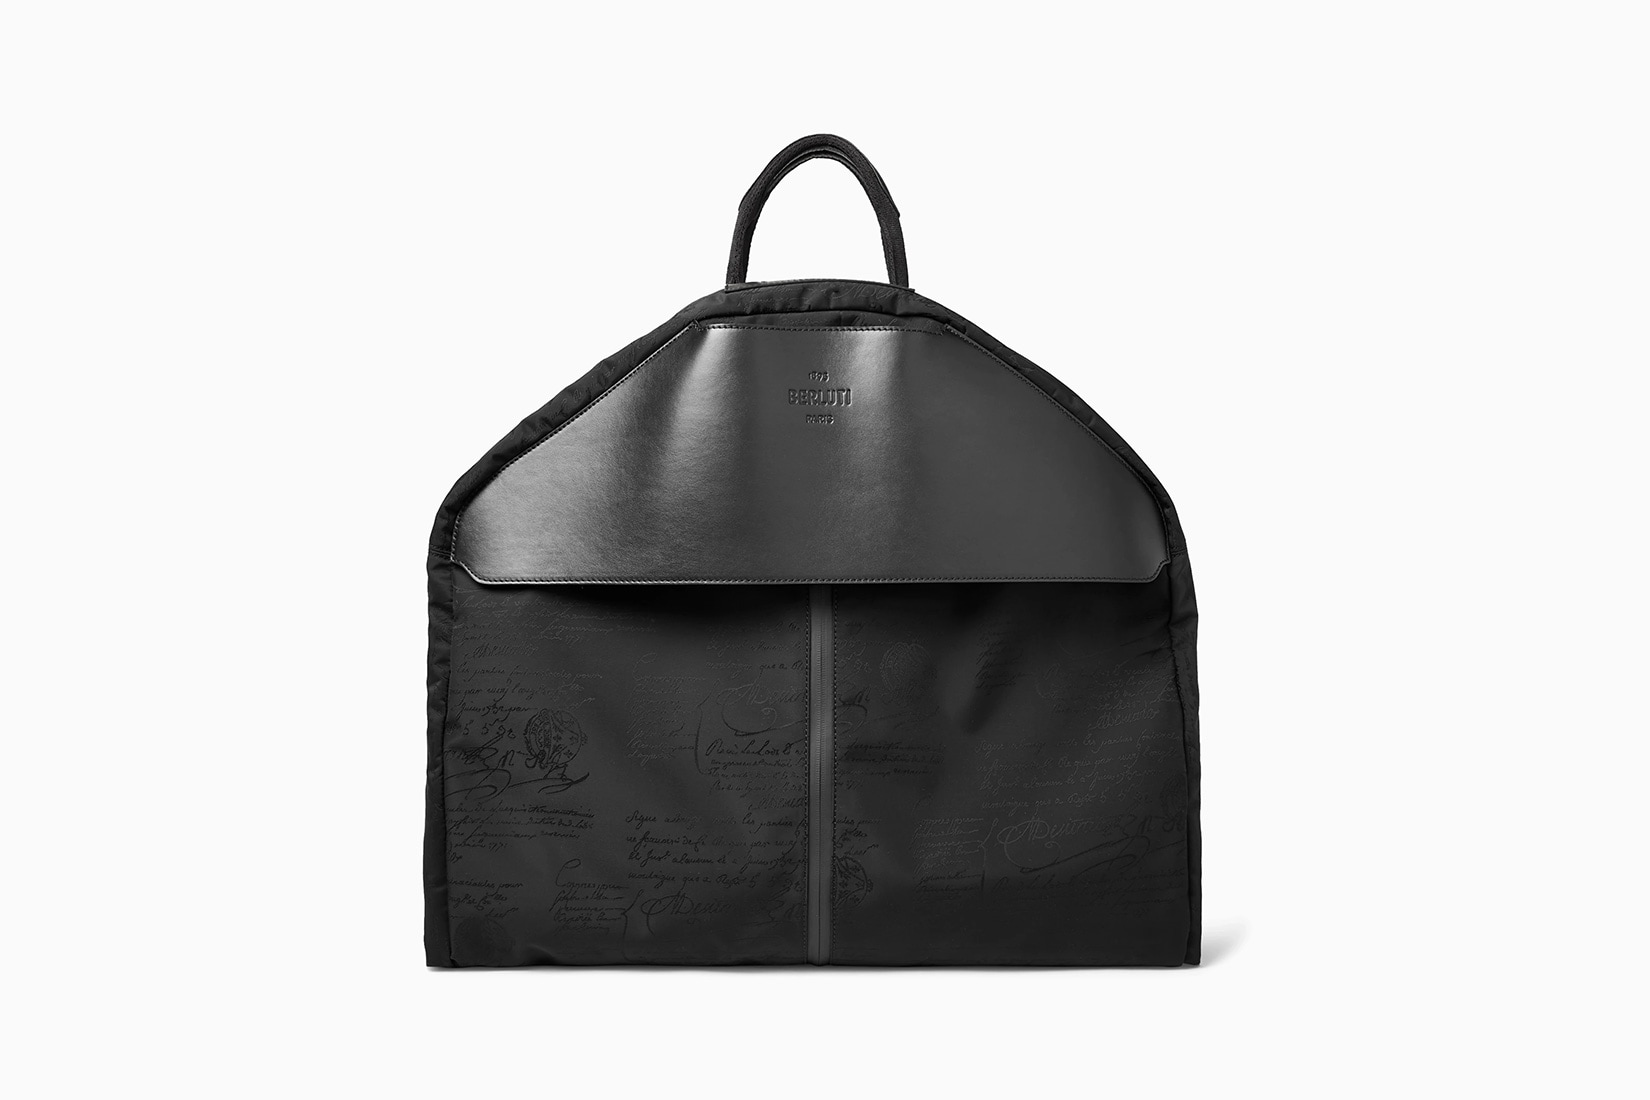 best garment bags expensive berluti review - Luxe Digital